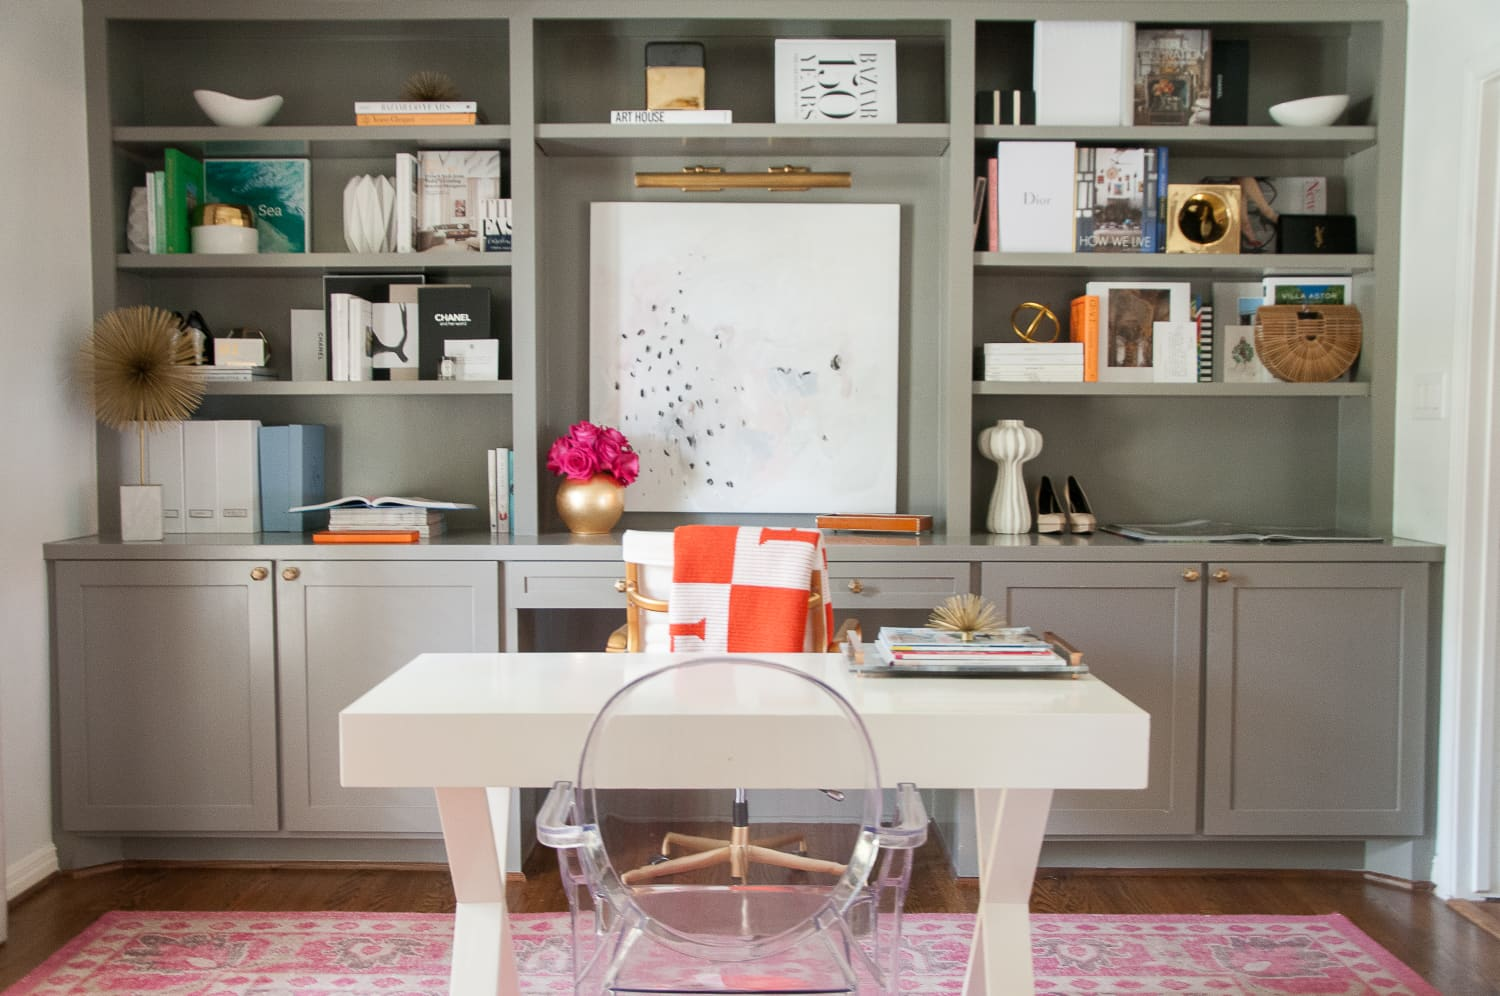 The Best Office Paint Colors, According to Interior Designers